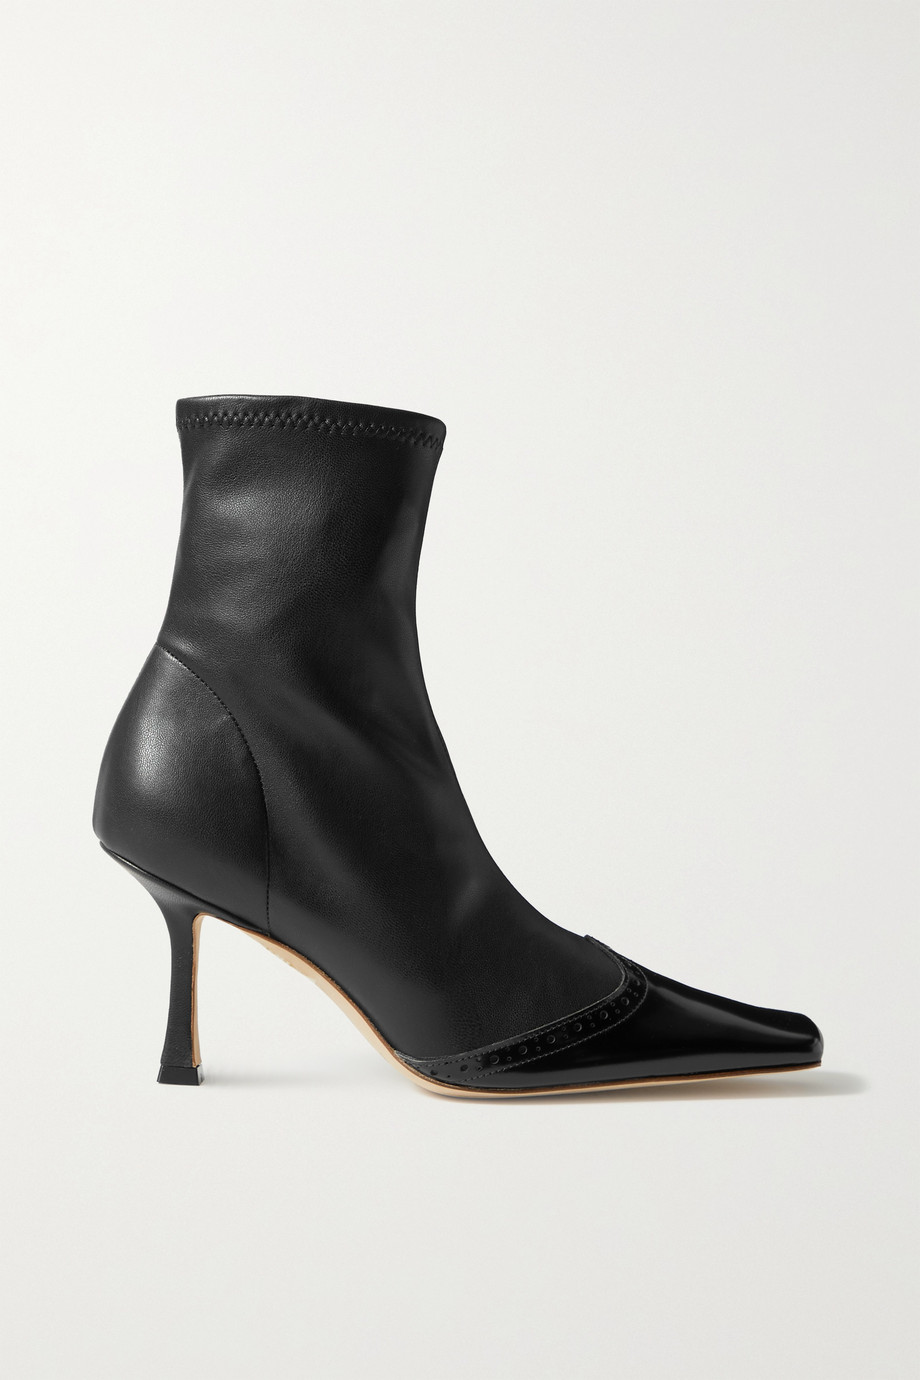 A.W.A.K.E. MODE Bernie paneled faux leather ankle boots